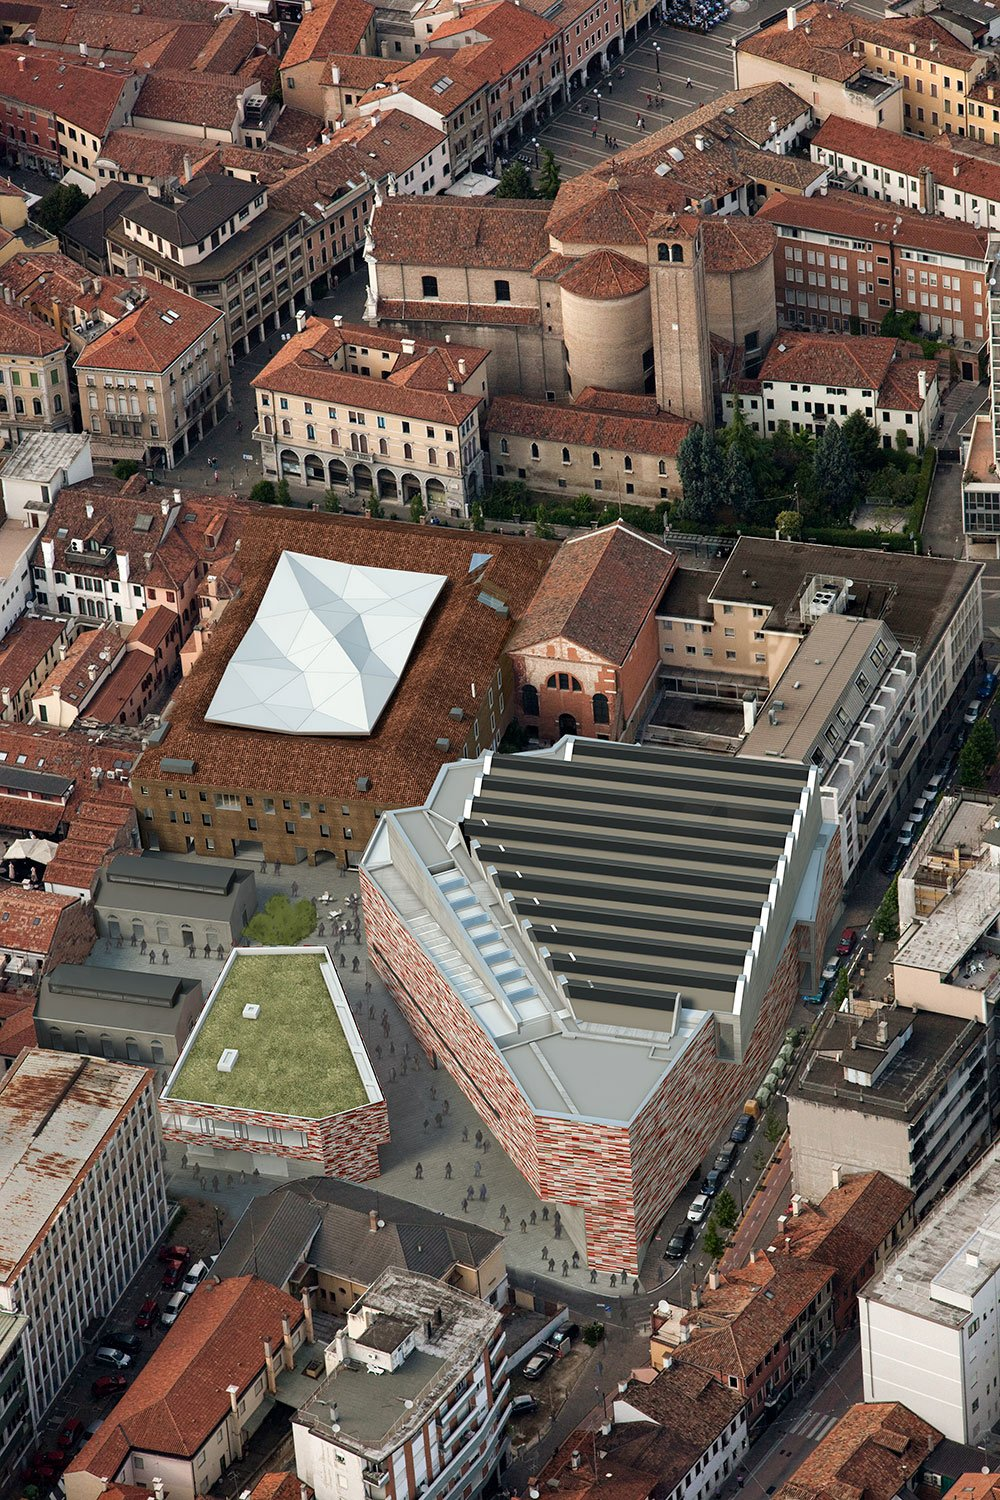 image of the new museum district from above Sauerbruch Hutton